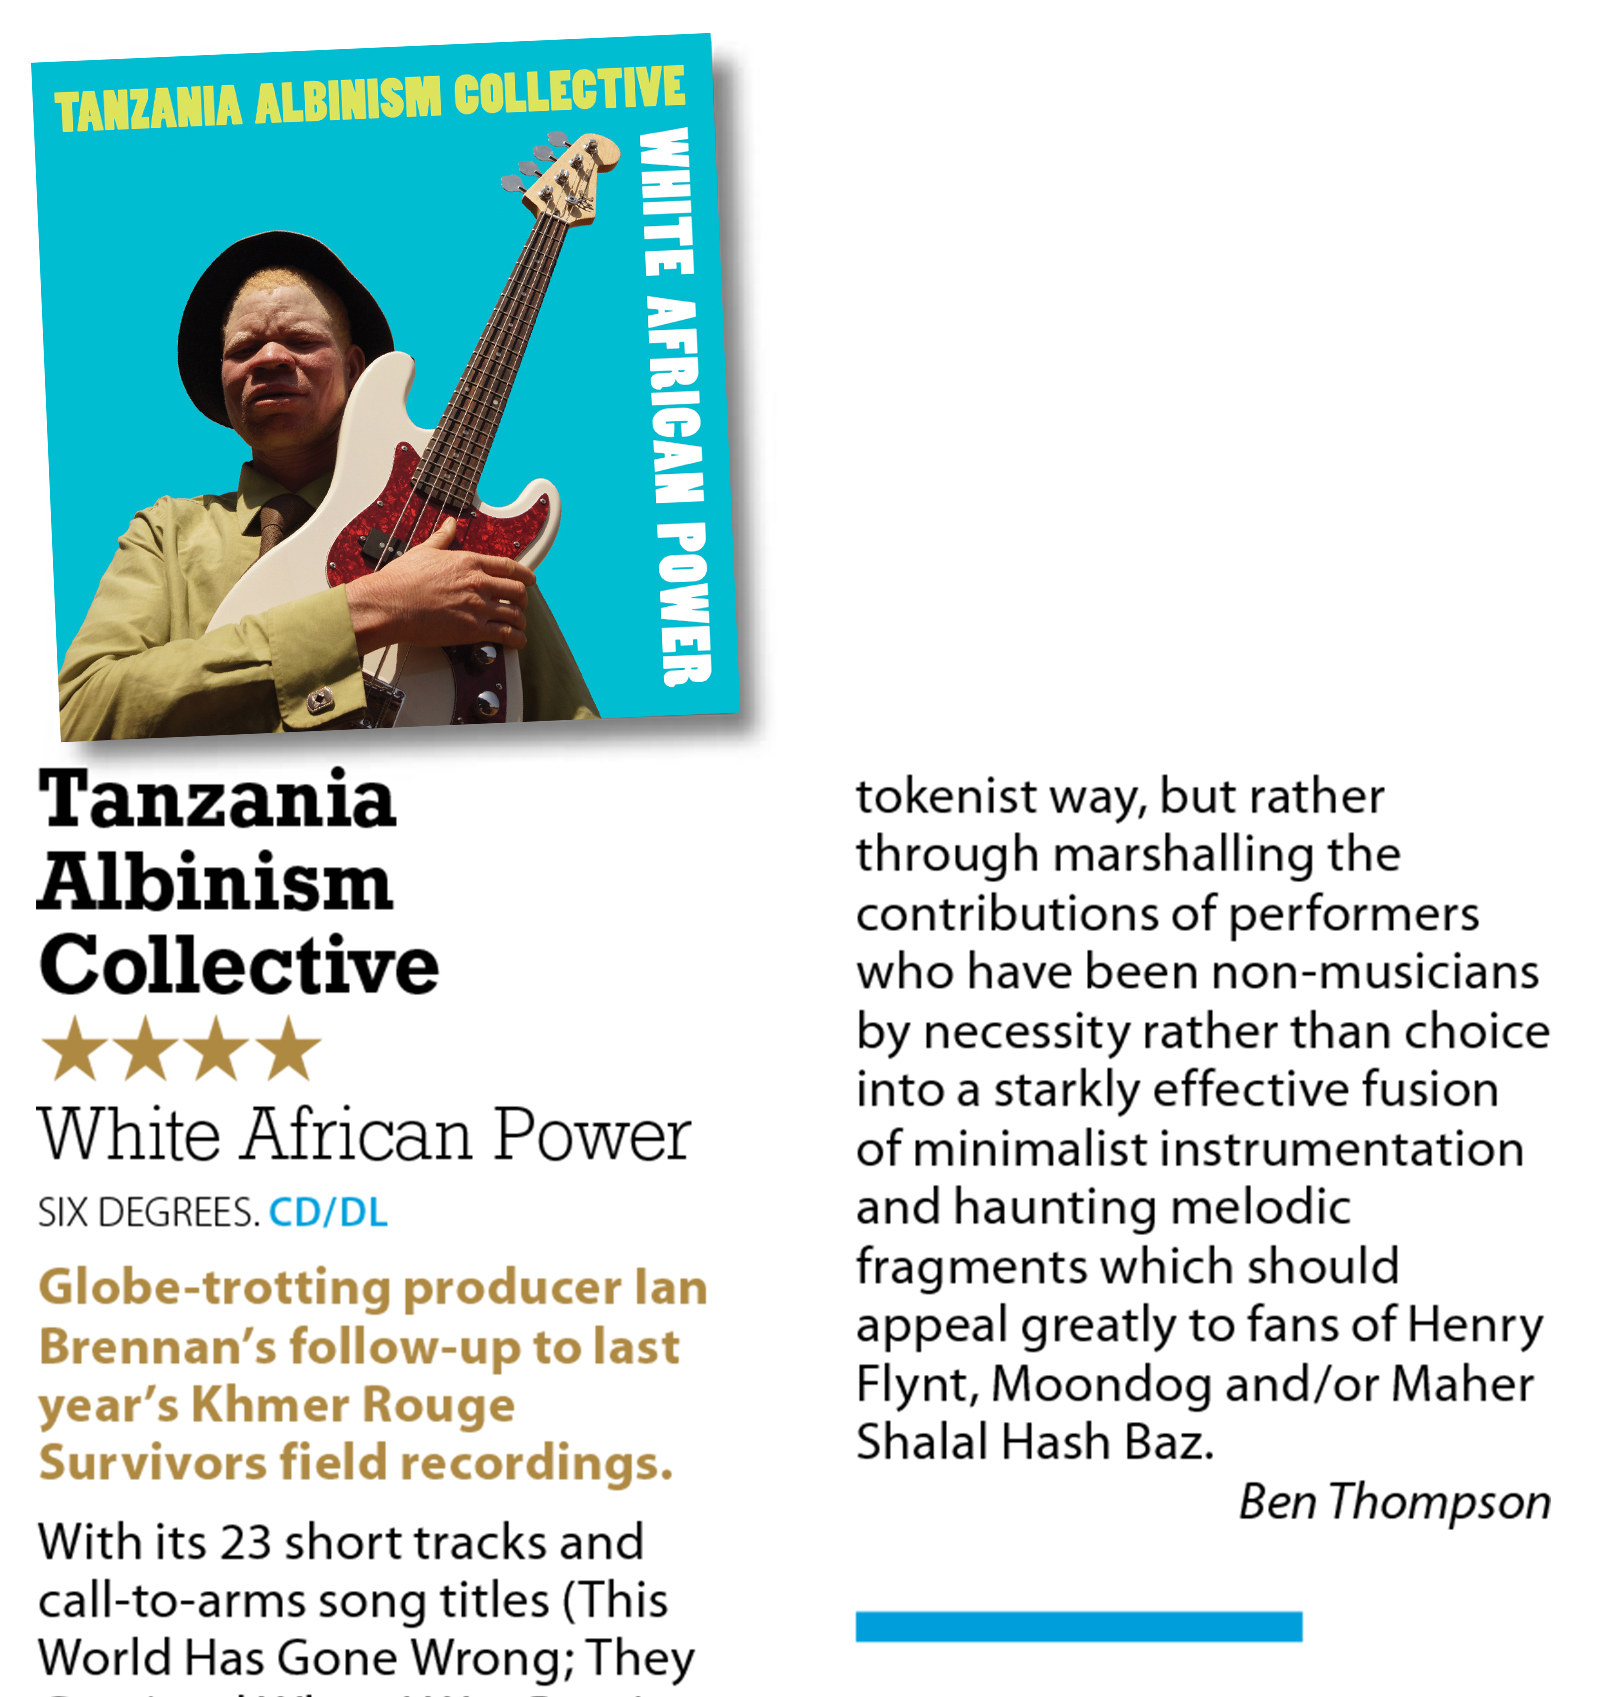 MOJO Magazine gives 4 stars to the Tanzania Albinism Collective album